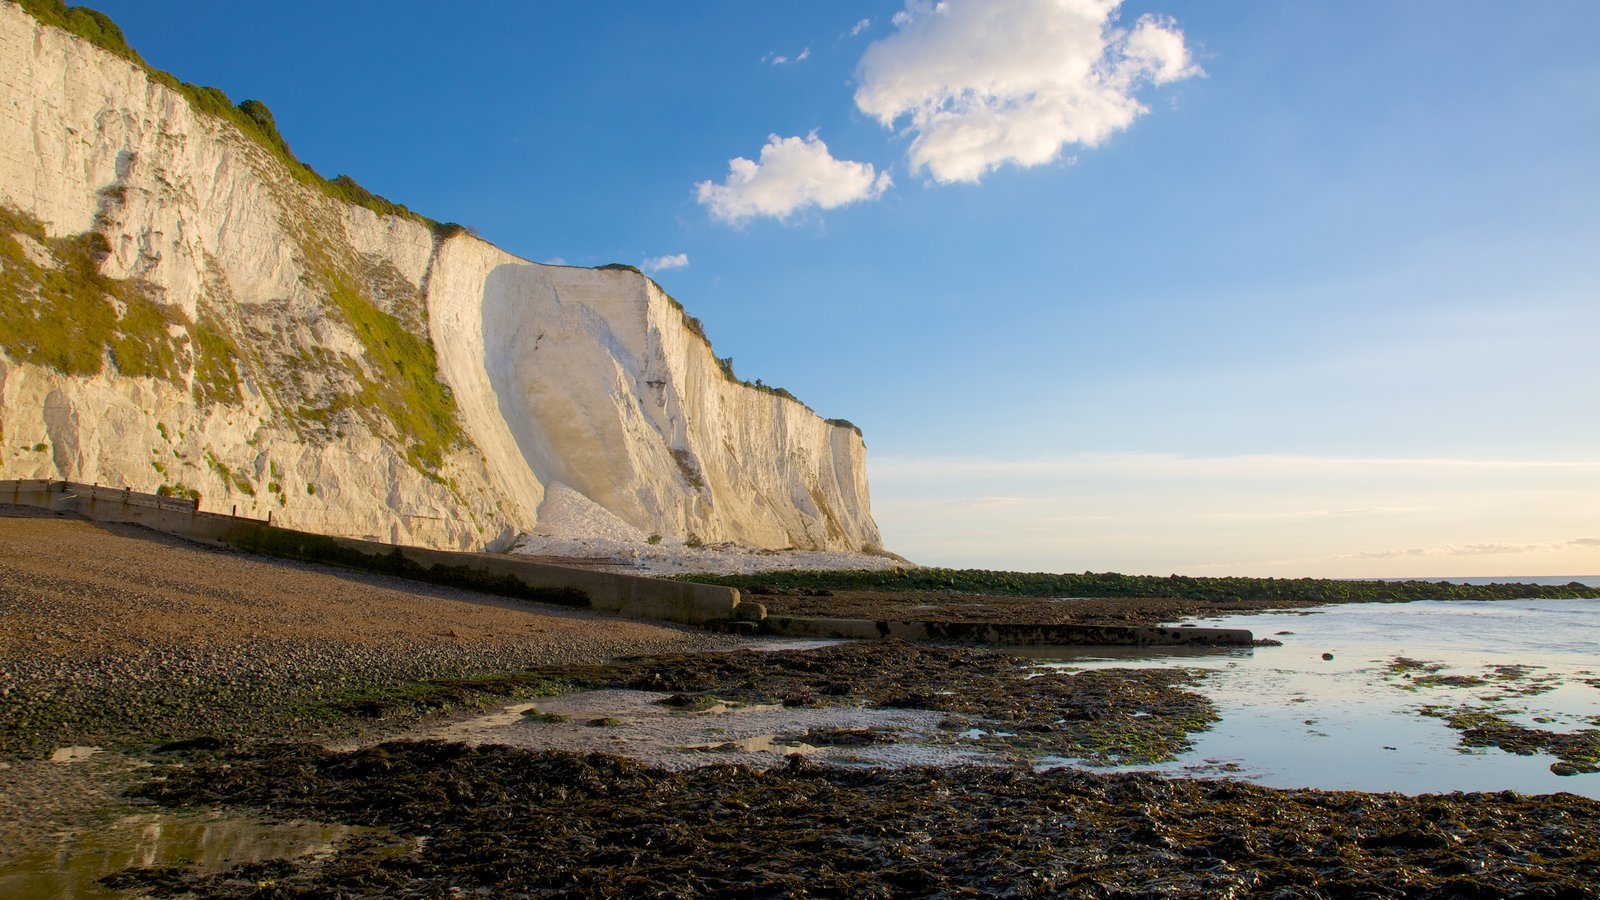 White Cliffs of Dover showing landscape views and a pebble beach